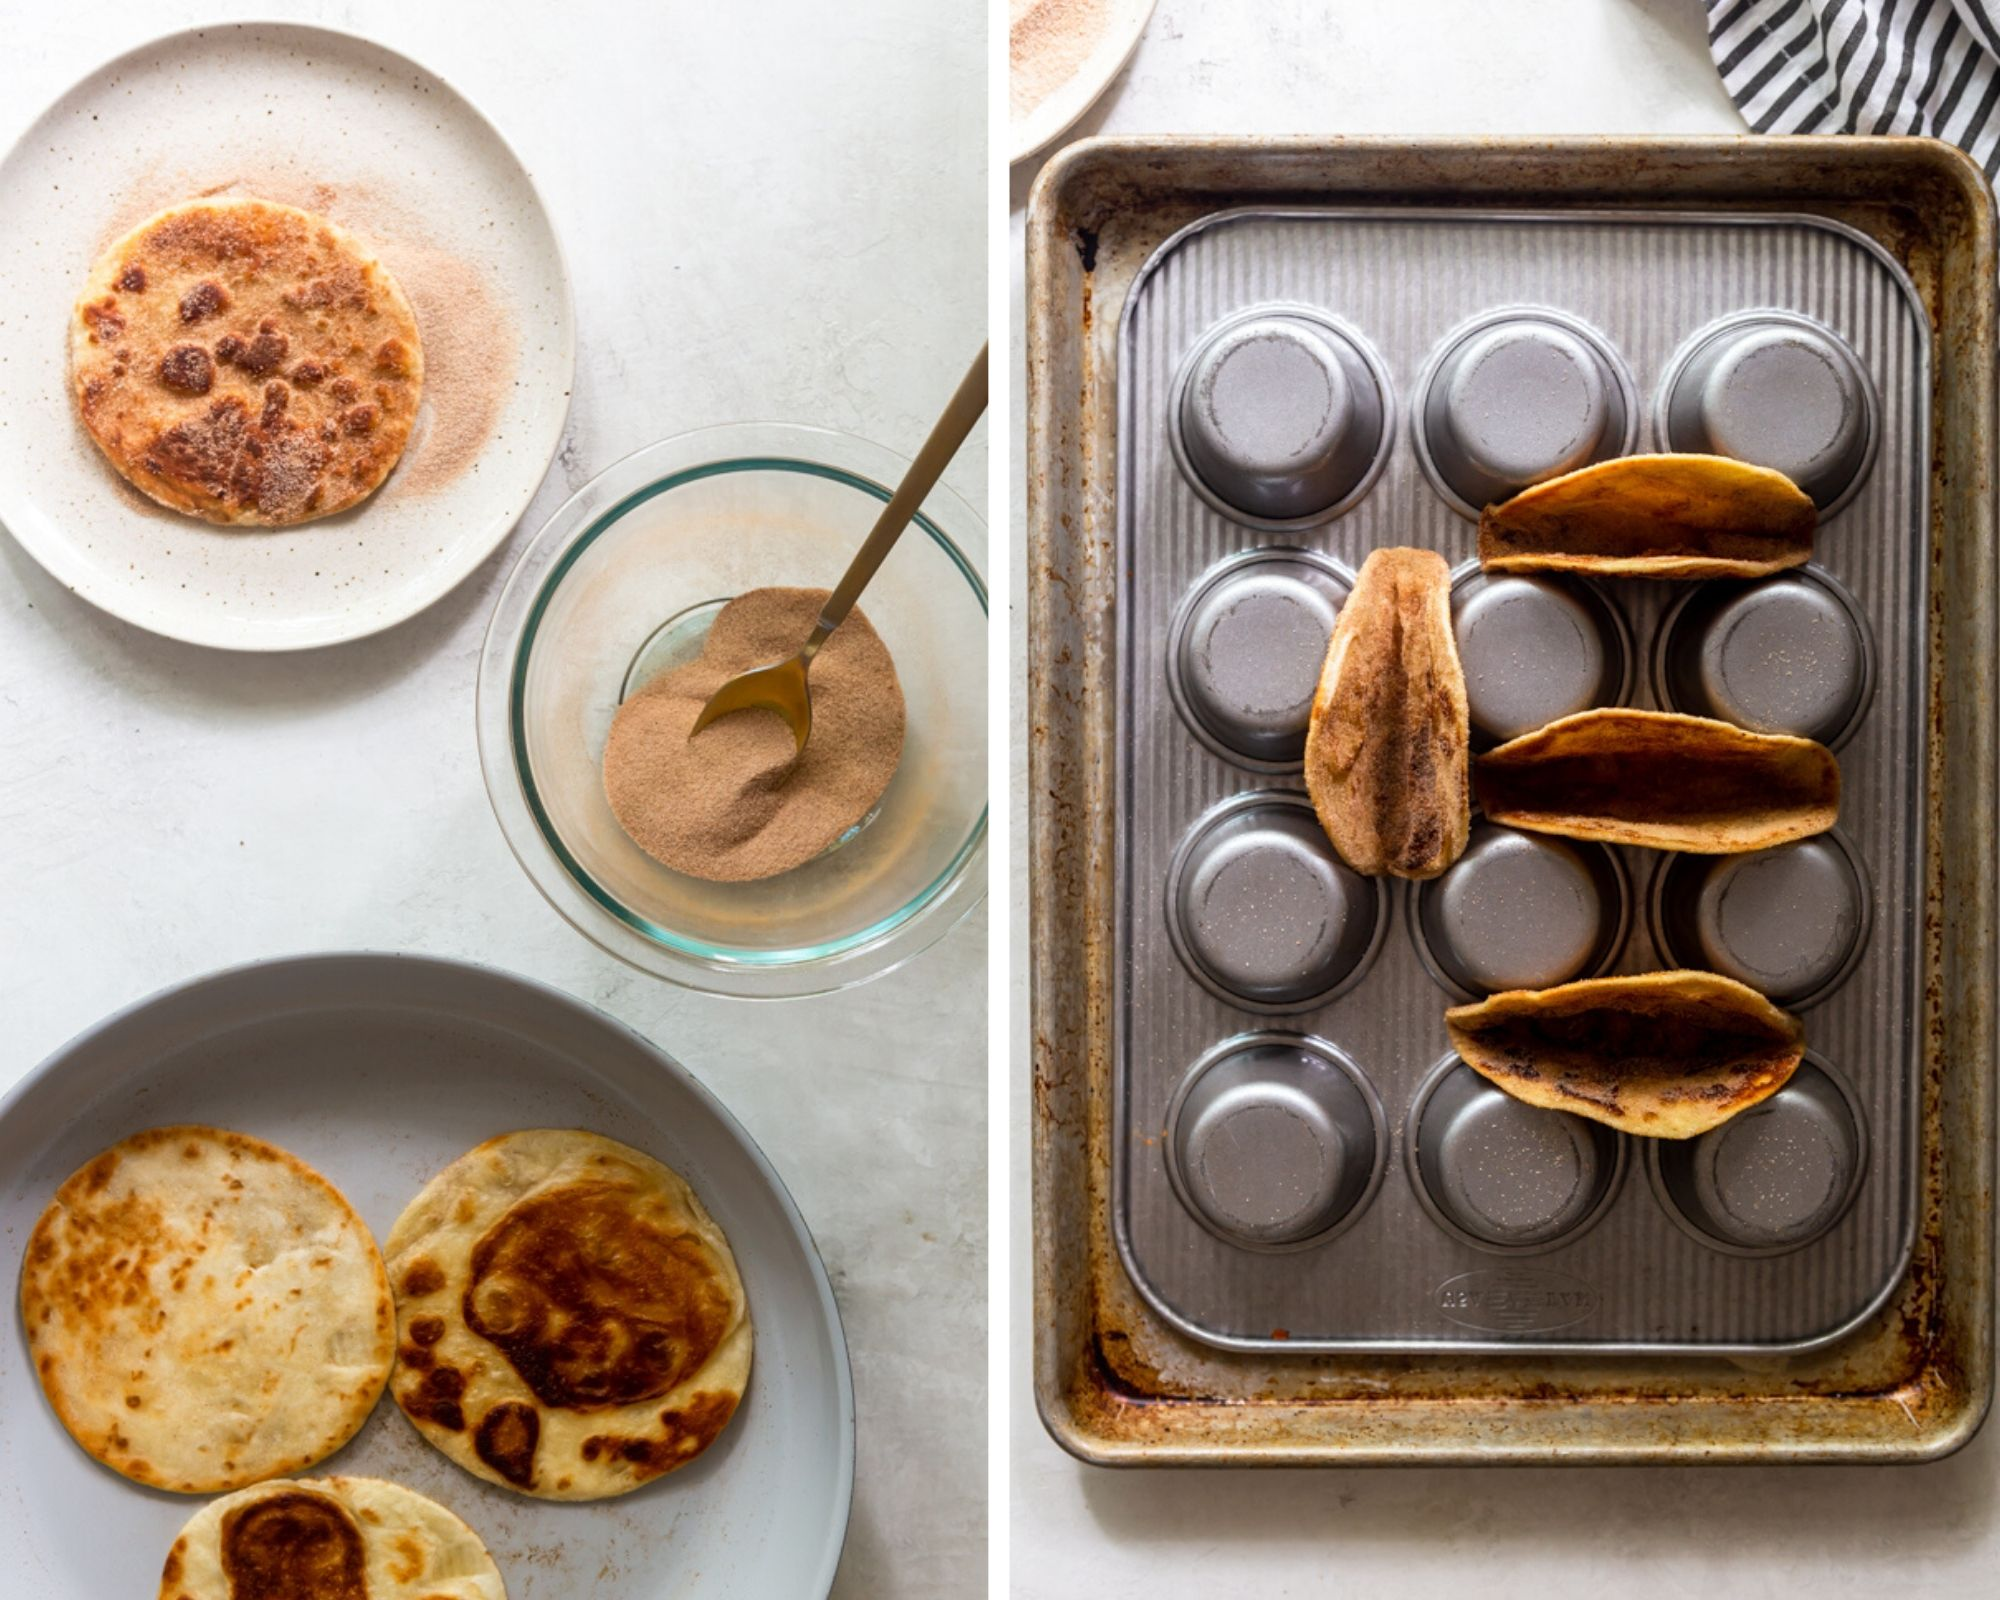 Collage image of tortillas being fried and coated in cinnamon sugar, and being shaped in muffin tin.